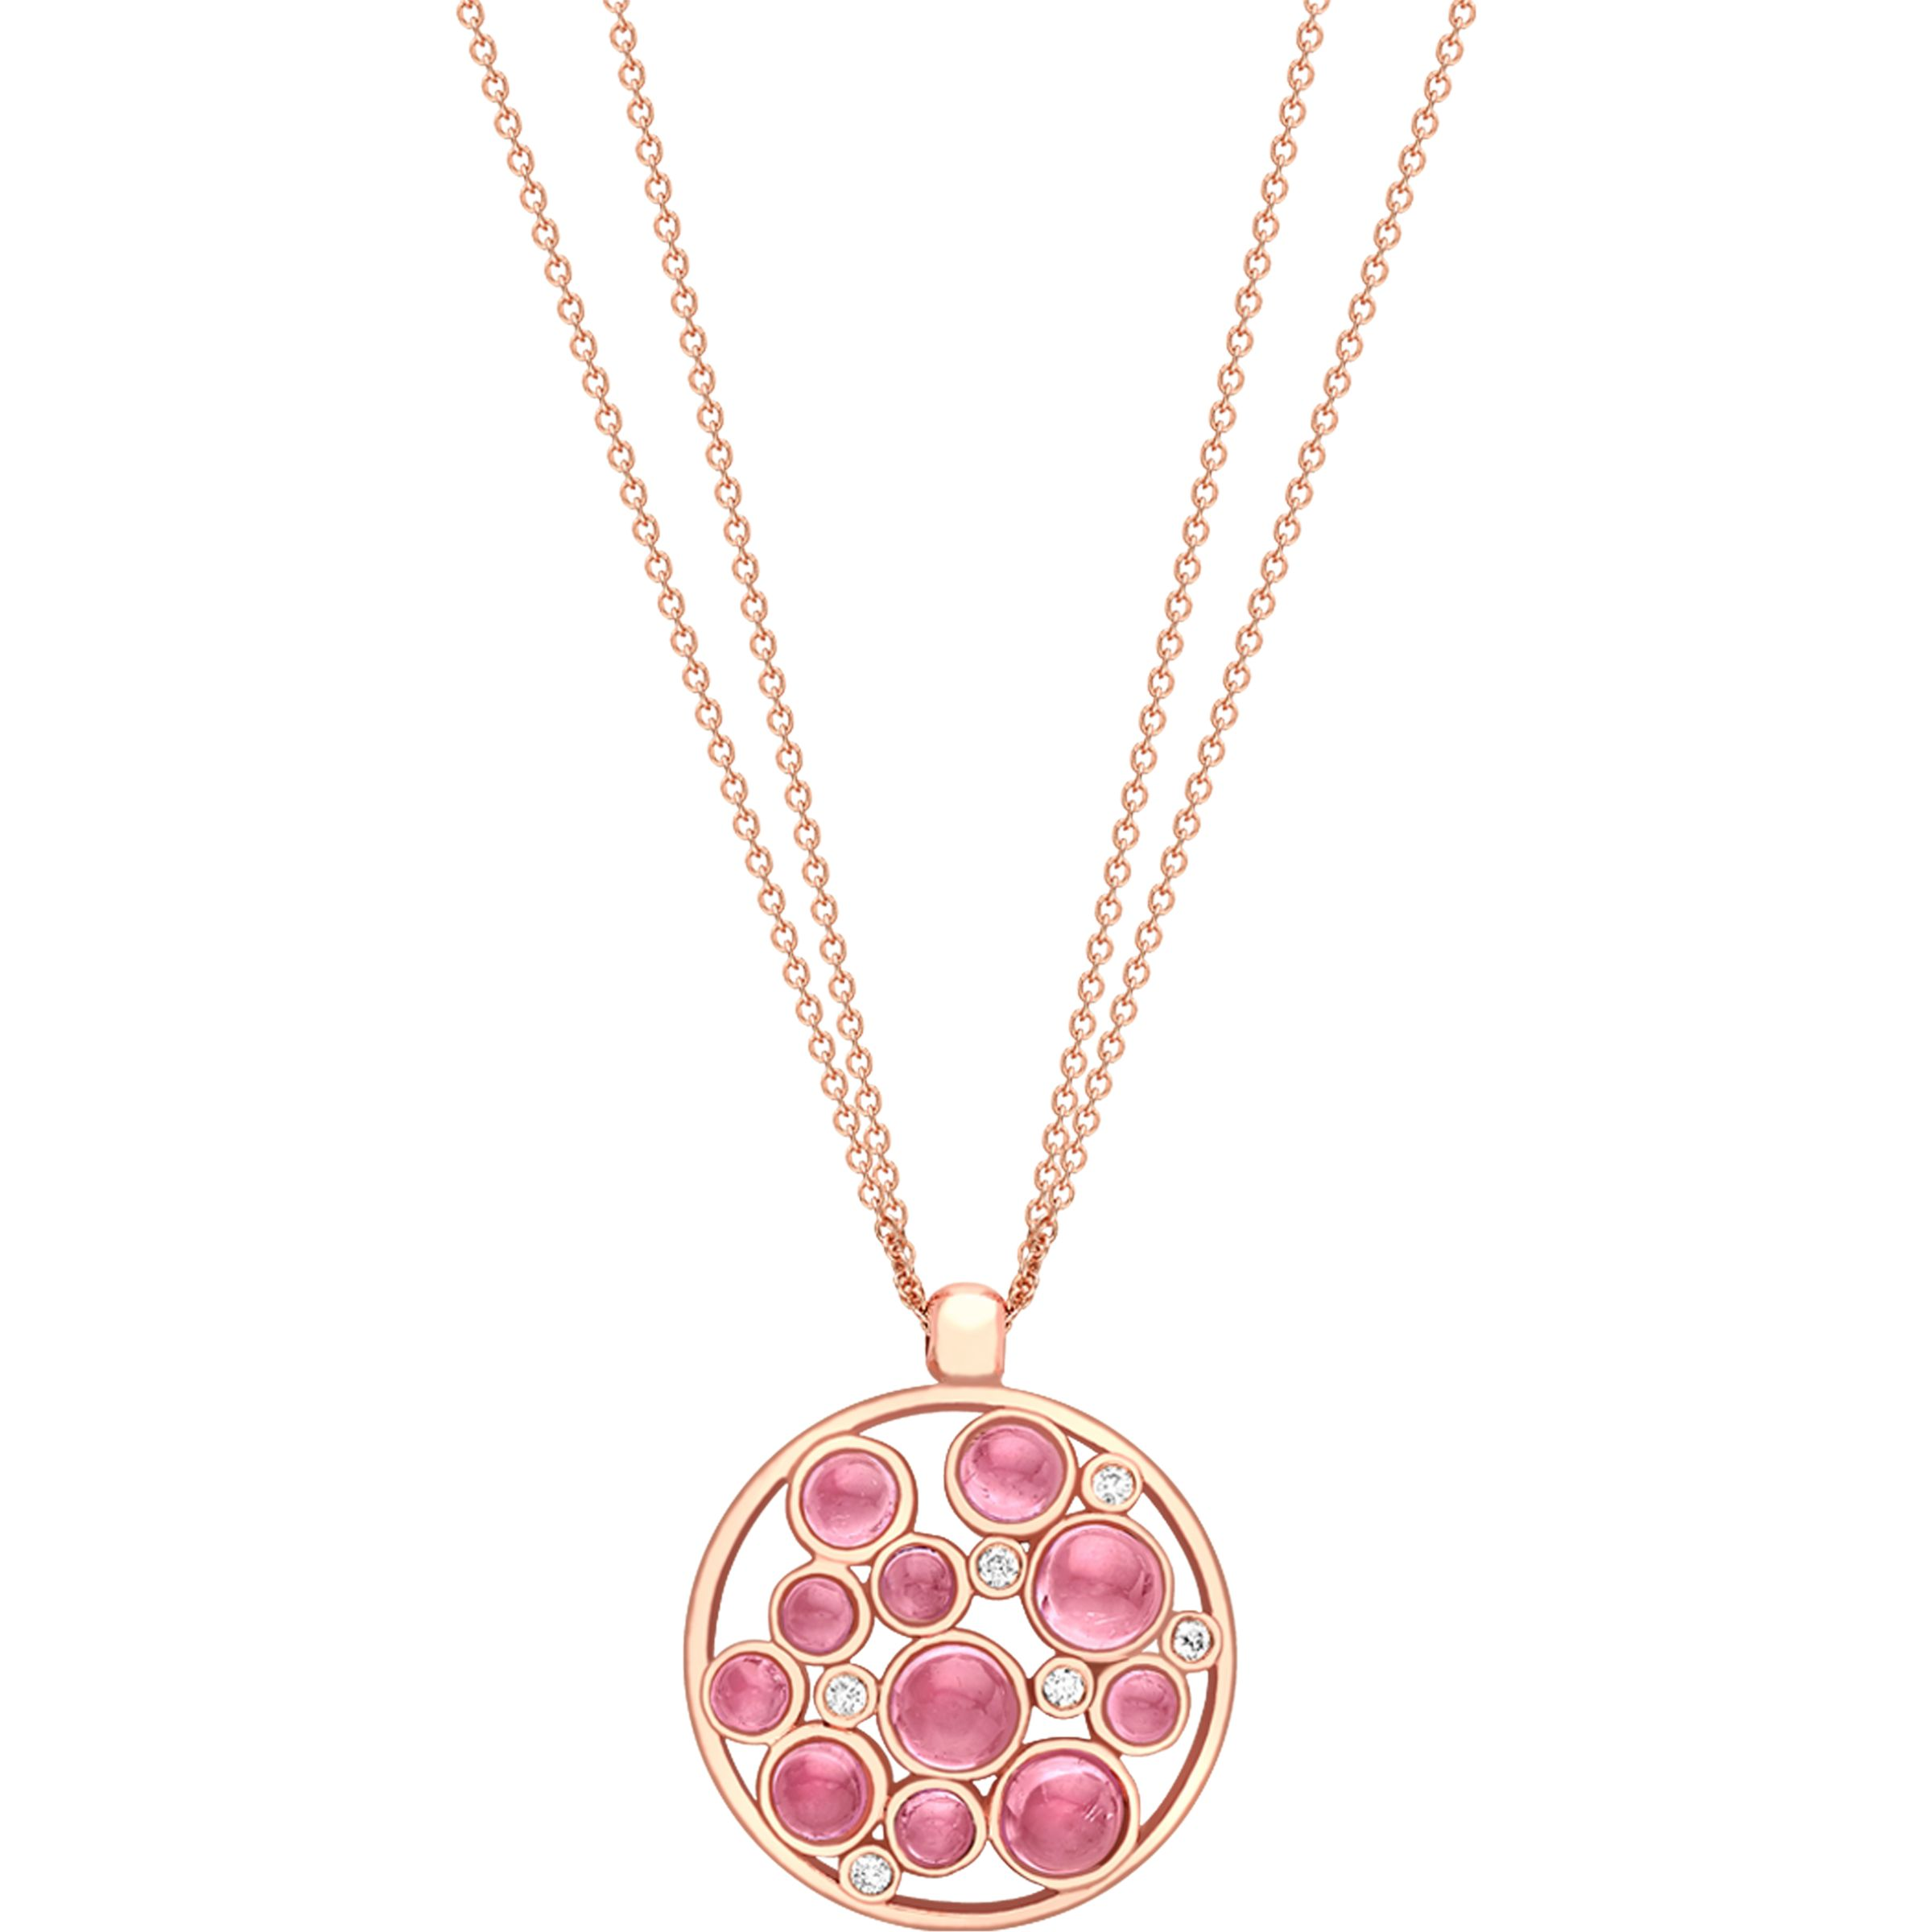 London Road London Road 9ct Gold Diamond Bubble Cluster Pendant, Rose Gold/Pink Tourmaline